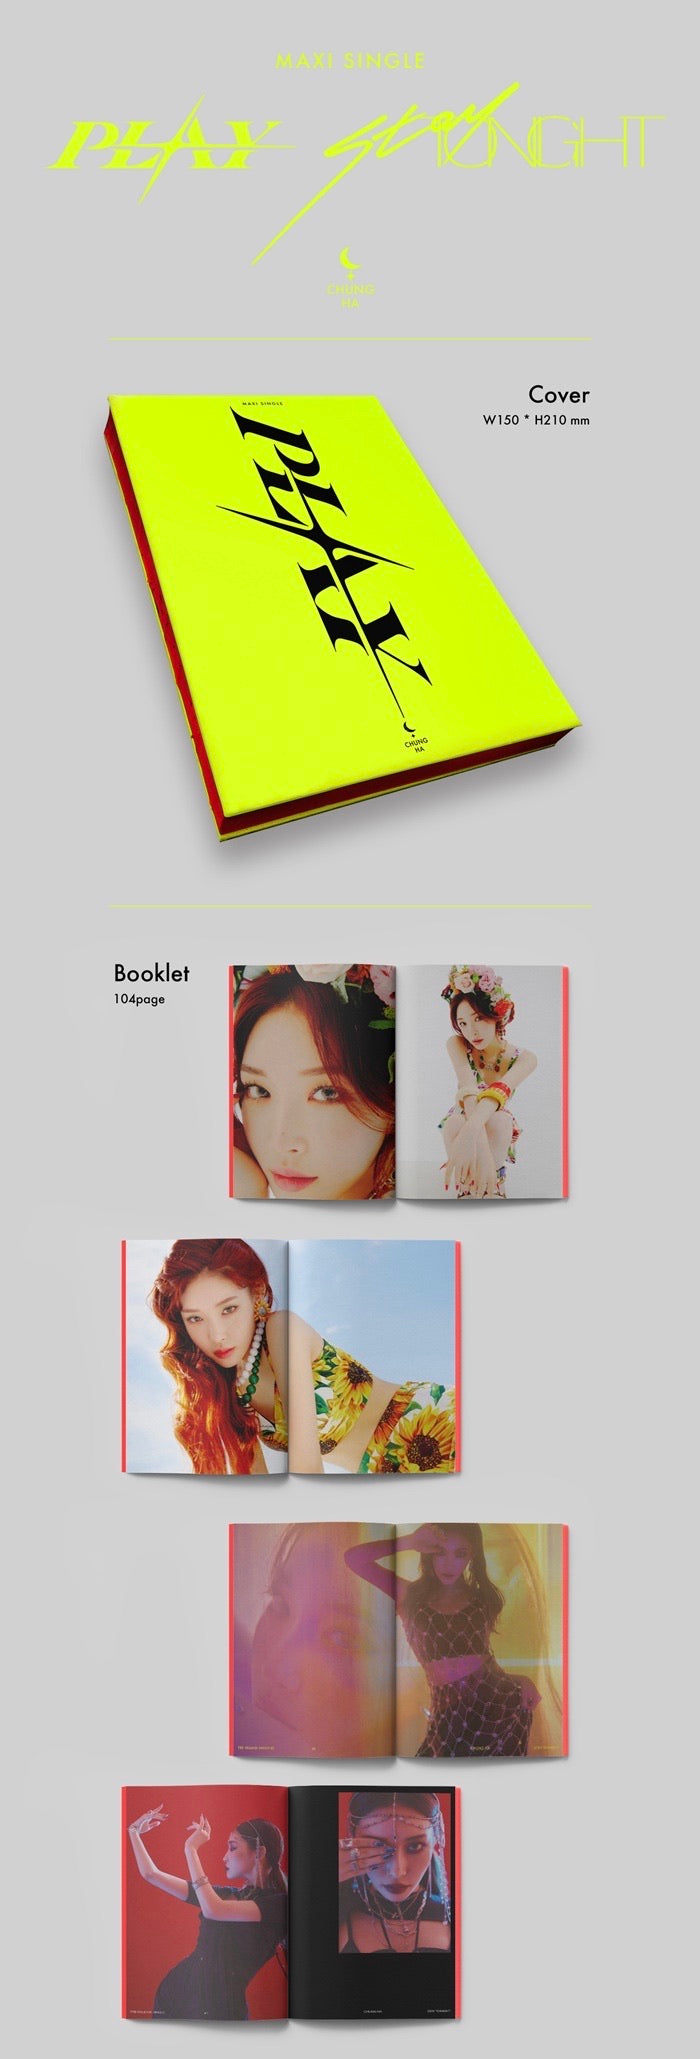 Chung Ha - Maxi Single - J-Store Online